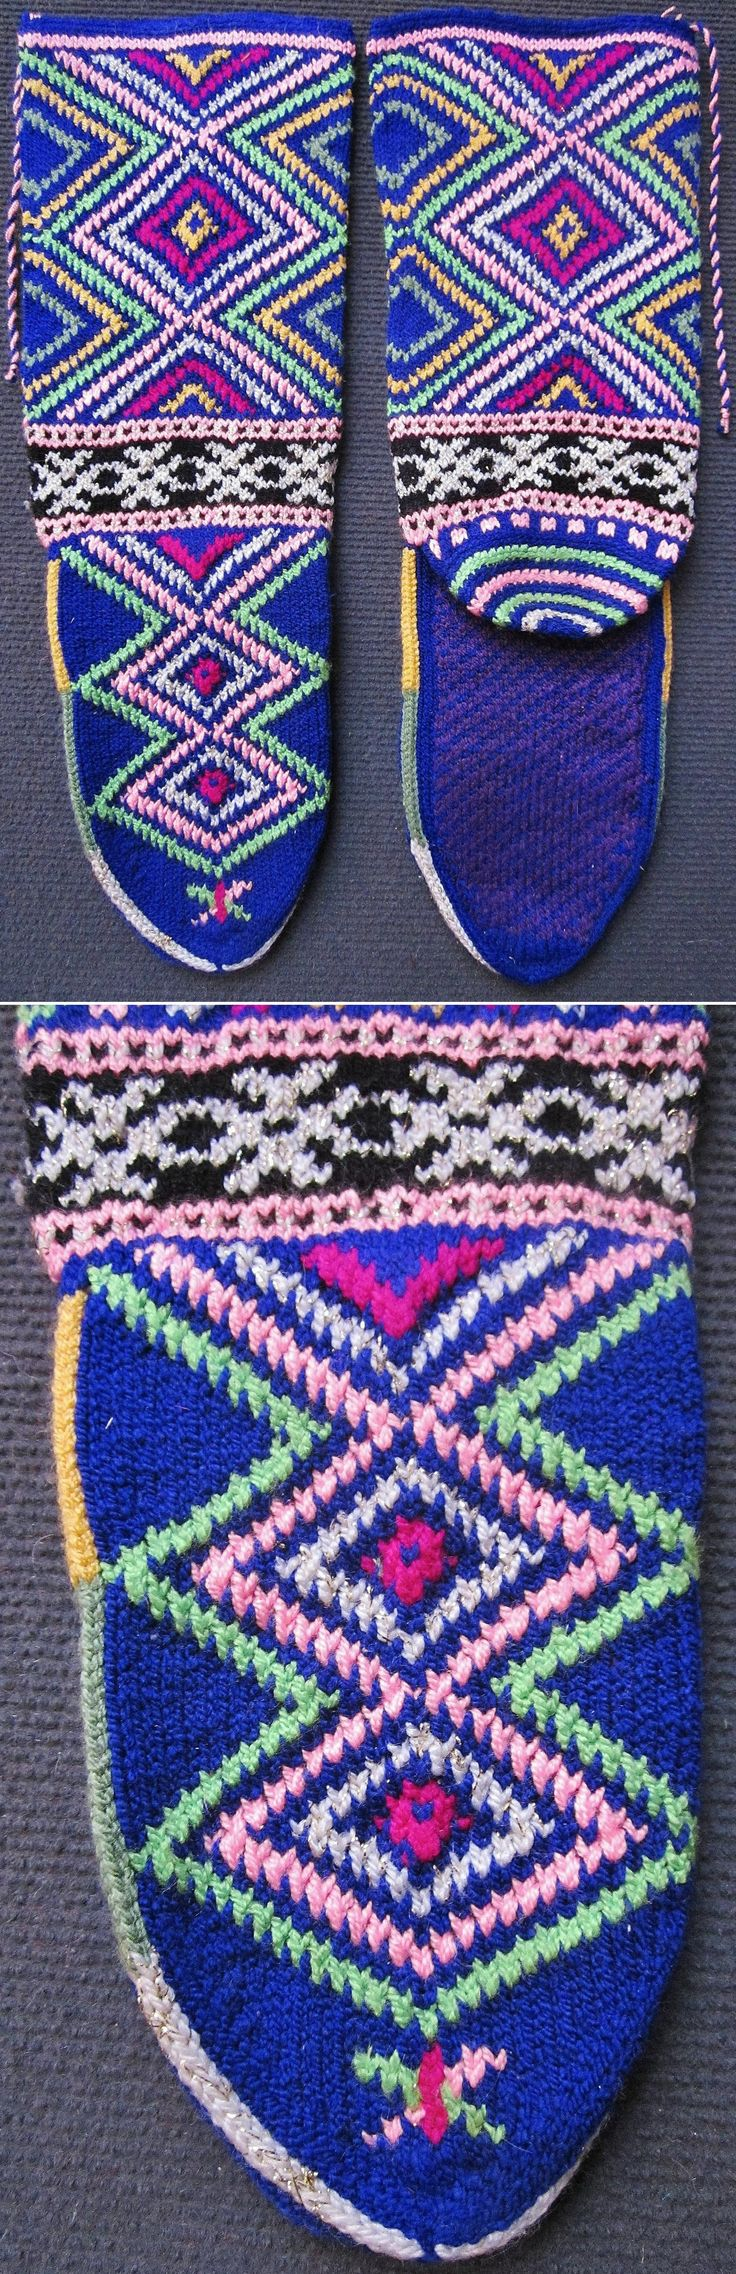 Short hand-knitted women's stockings.  From Pomak immigrants, settled in the Biga district (Çanakkale province).  Ca. 1975.  Wool, orlon, lurex (plied into the white orlon yarn).  With diamond-shaped 'ayna' (mirror) pattern, which is an amulet against the evil eye.  (Inv.nr. çor160 - Kavak Costume Collection-Antwerpen/Belgium).